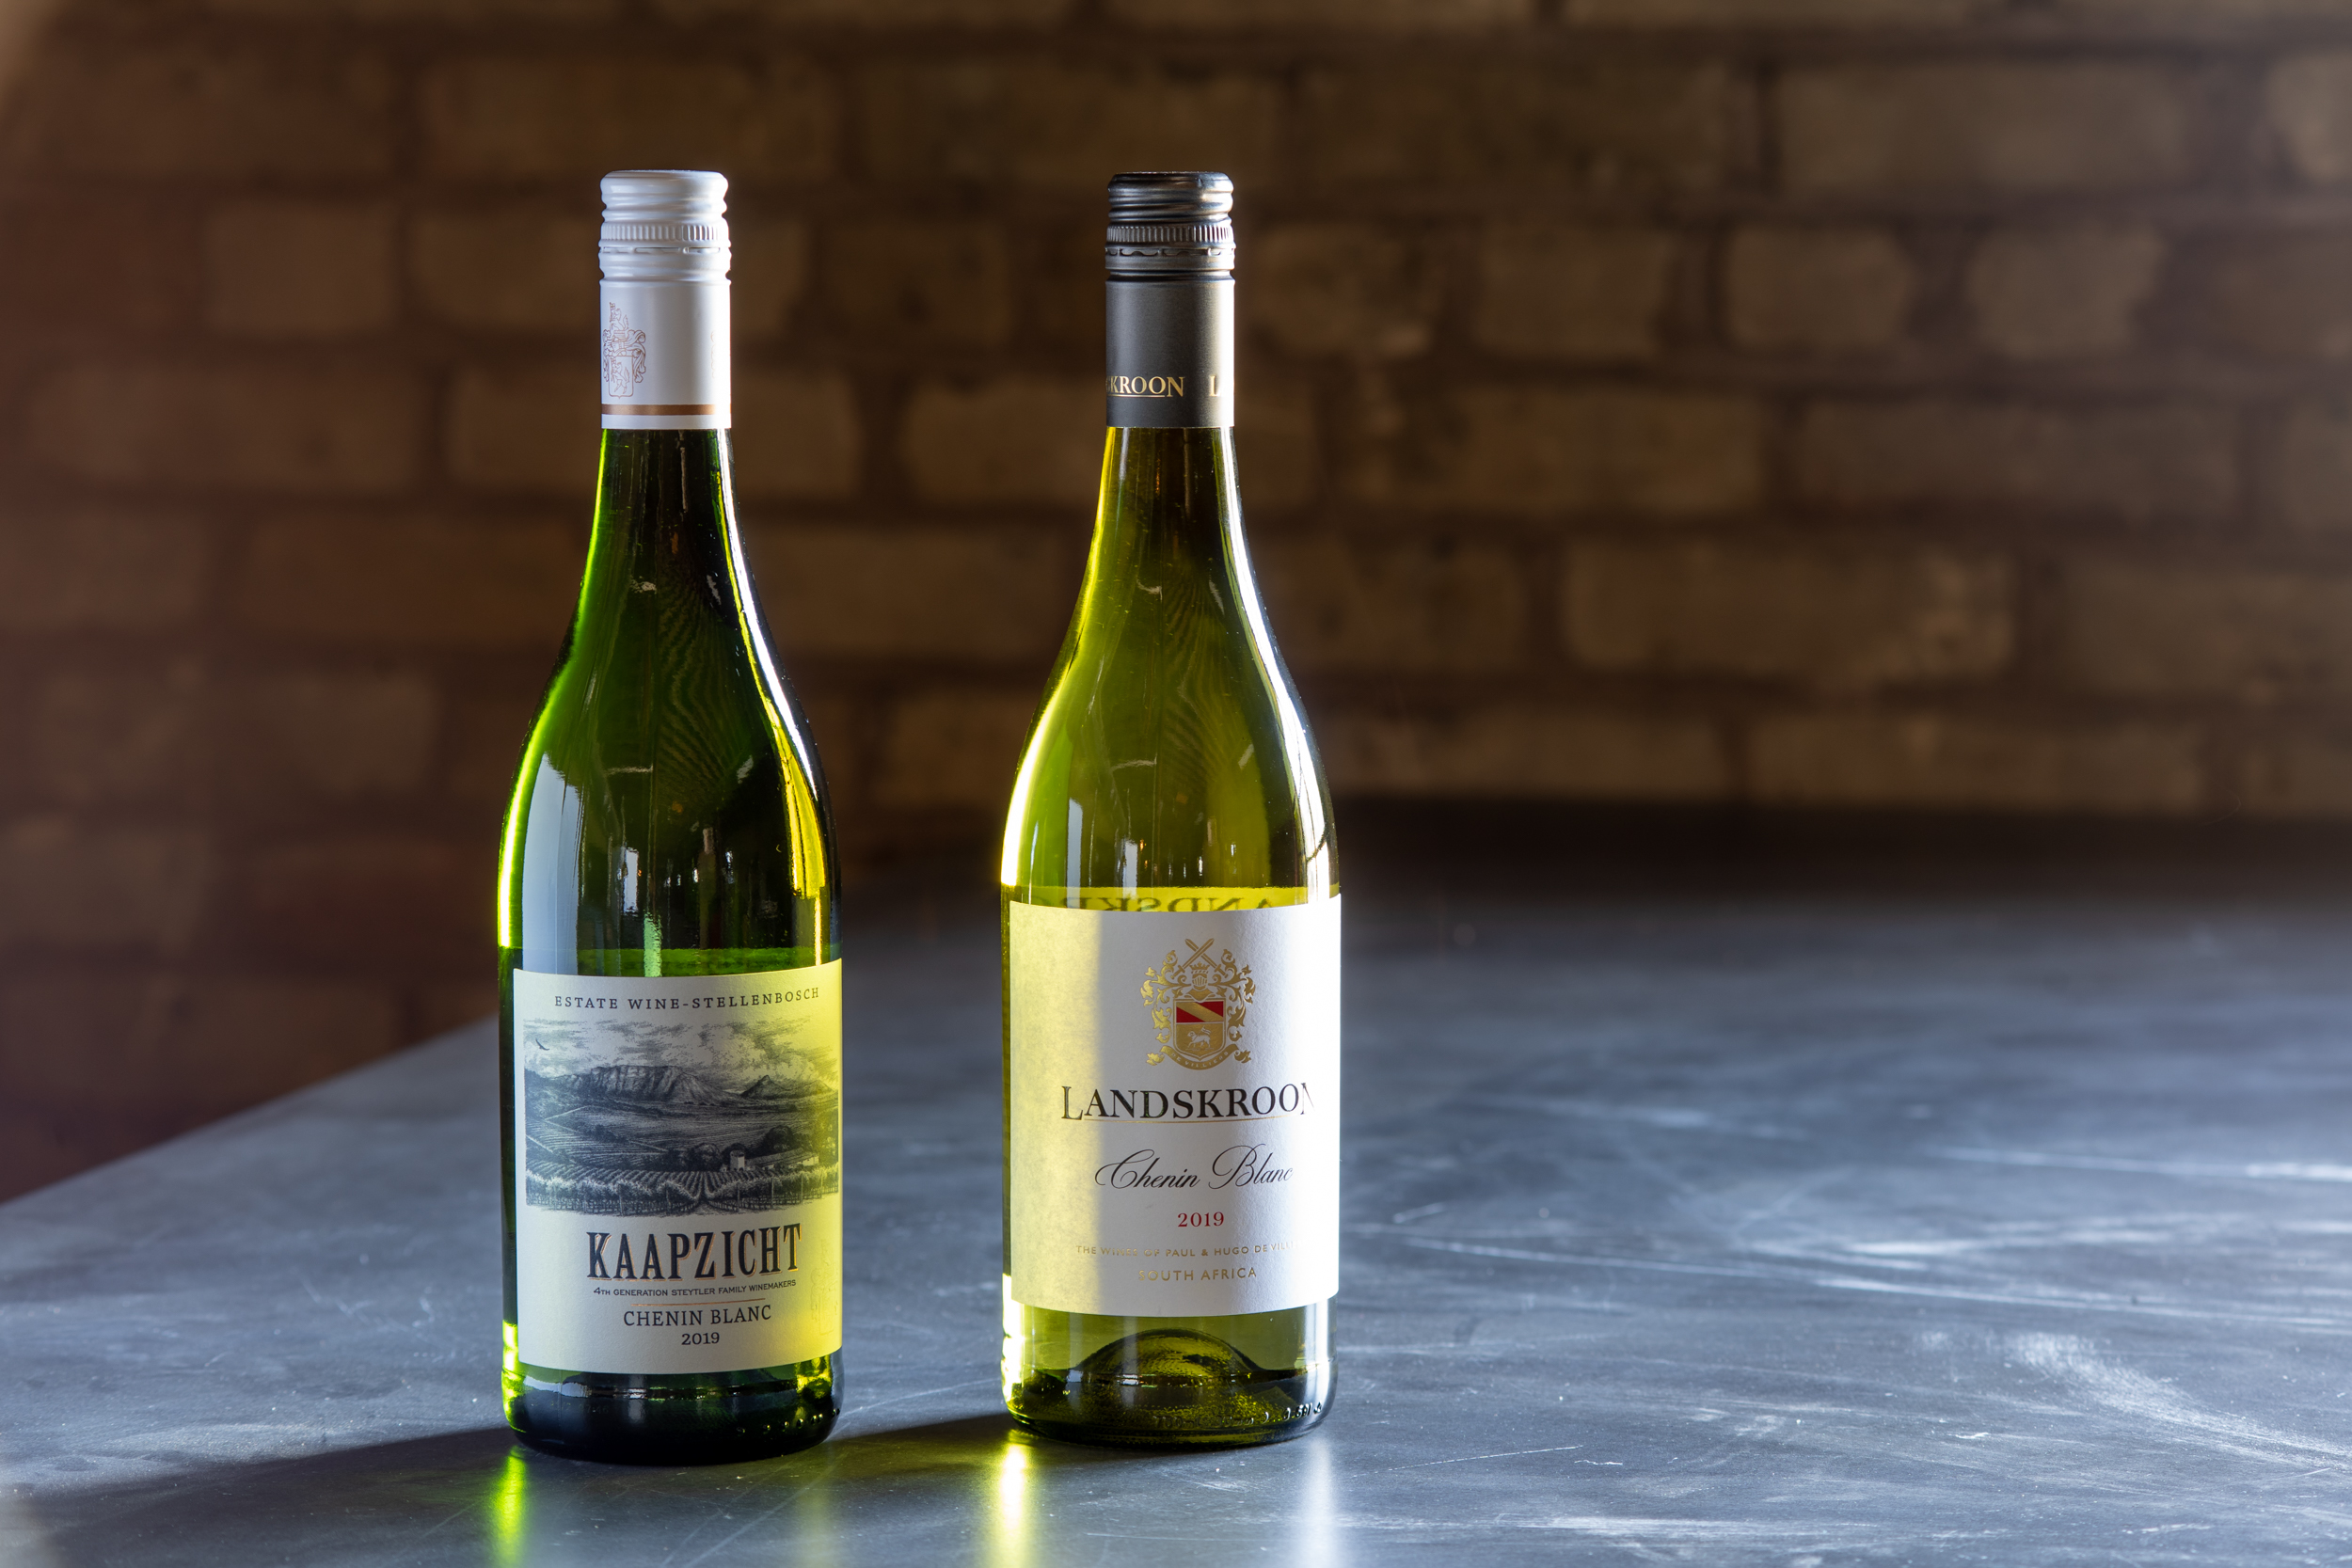 Kaapzicht Chenin Blanc ($12) and Landskroon Chenin Blanc ($11) // Photo by Tony Saunders